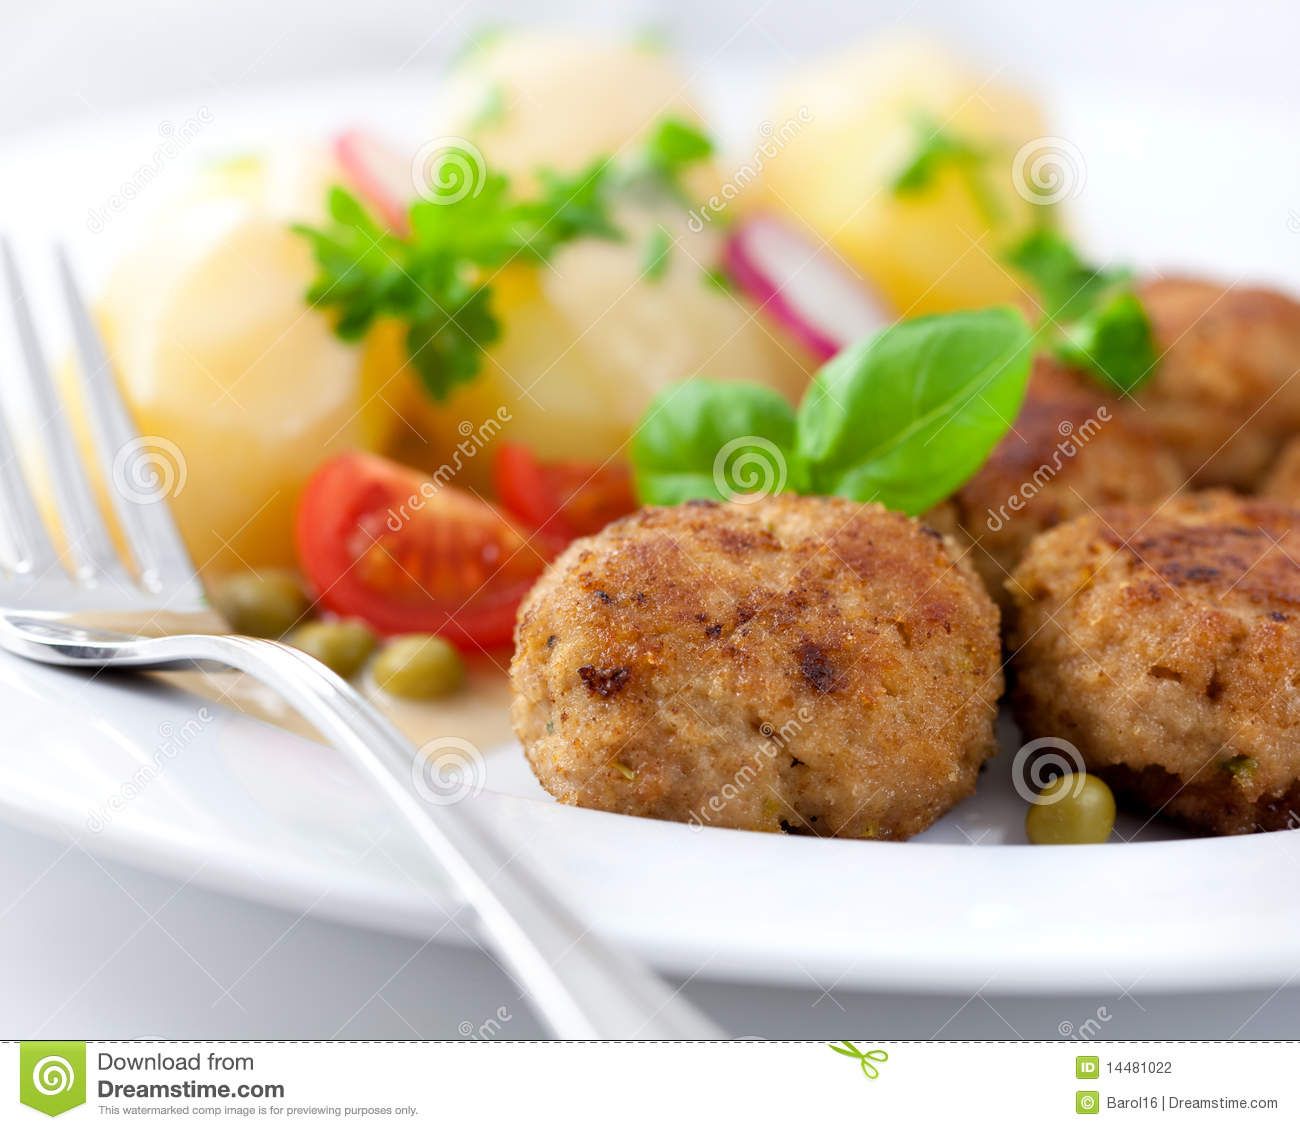 Frikadellers with potatoes